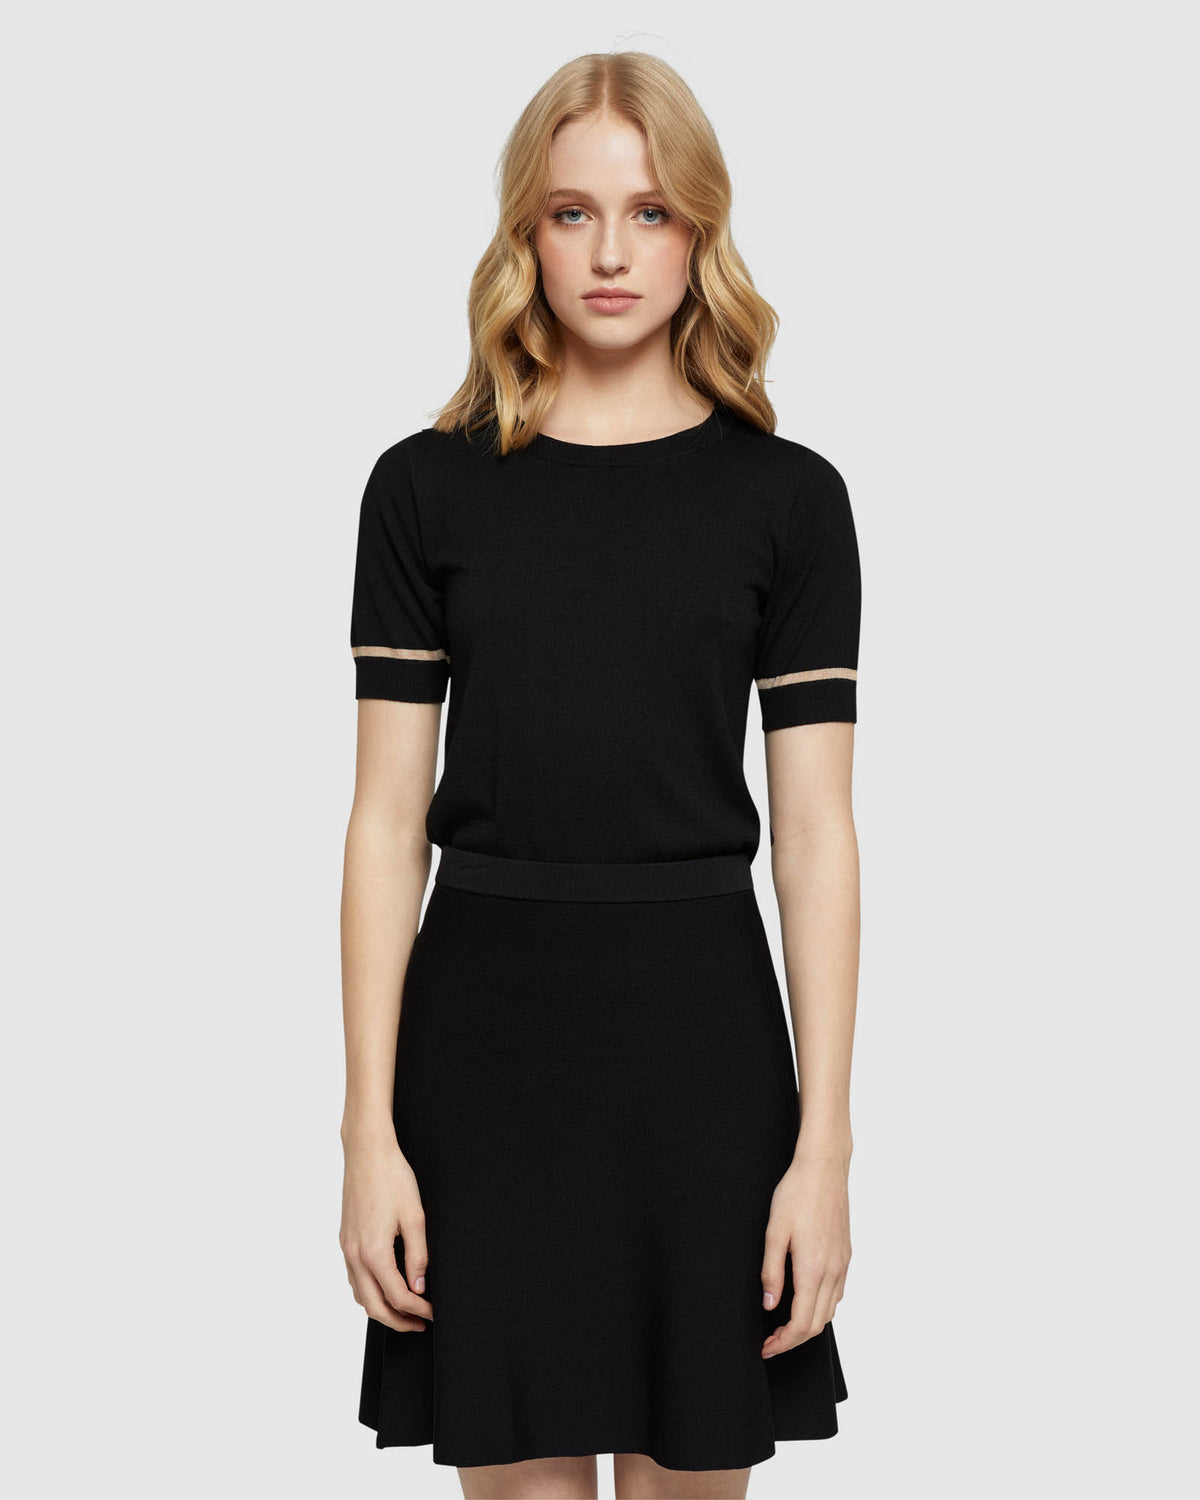 GRACE SHORT SLEEVE KNIT